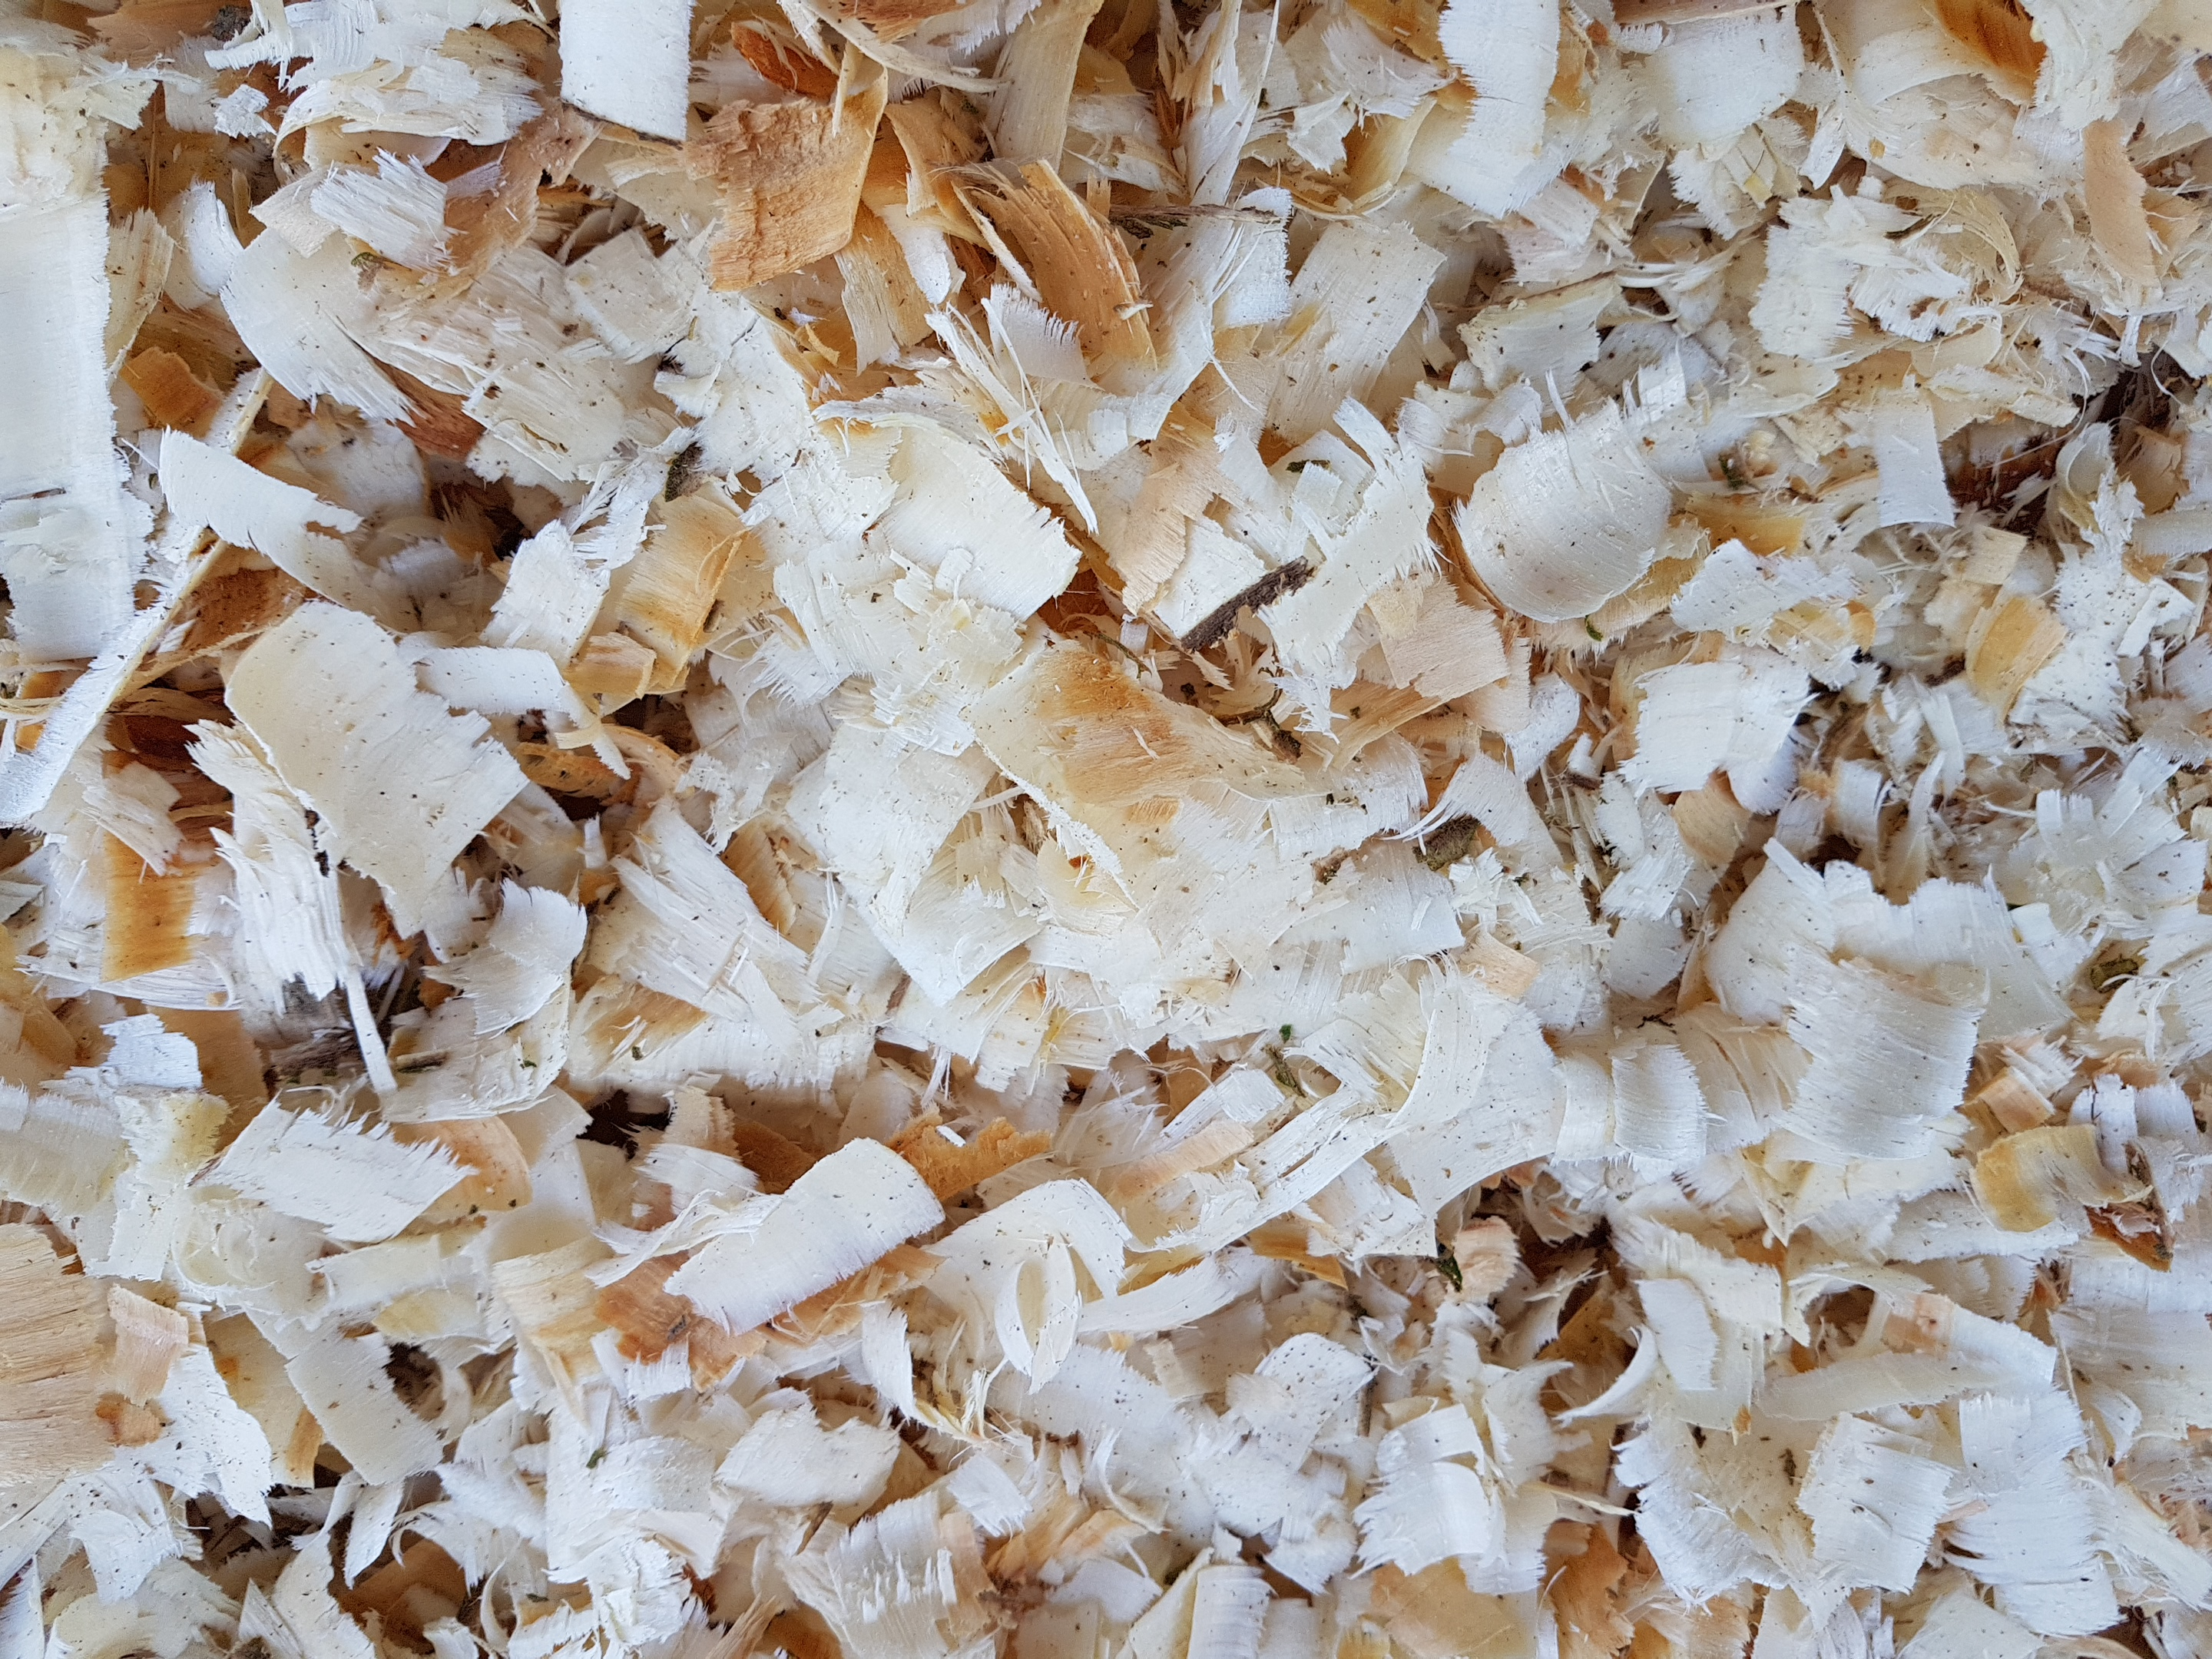 equi-bed-shavings-large-flake-